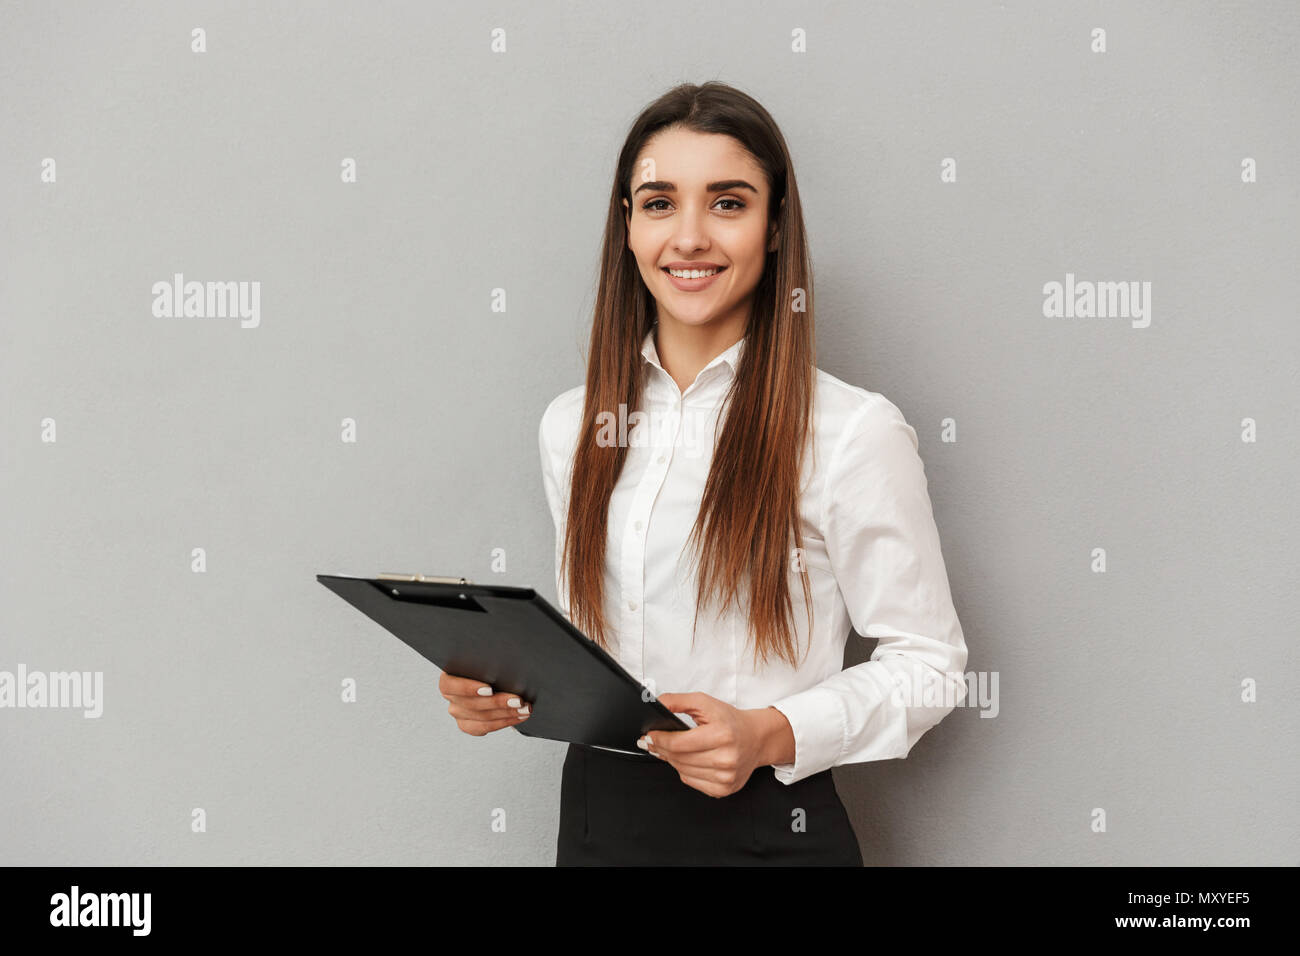 Photo of smiling woman in white shirt and black skirt holding clipboard with documents in office isolated over gray background - Stock Image